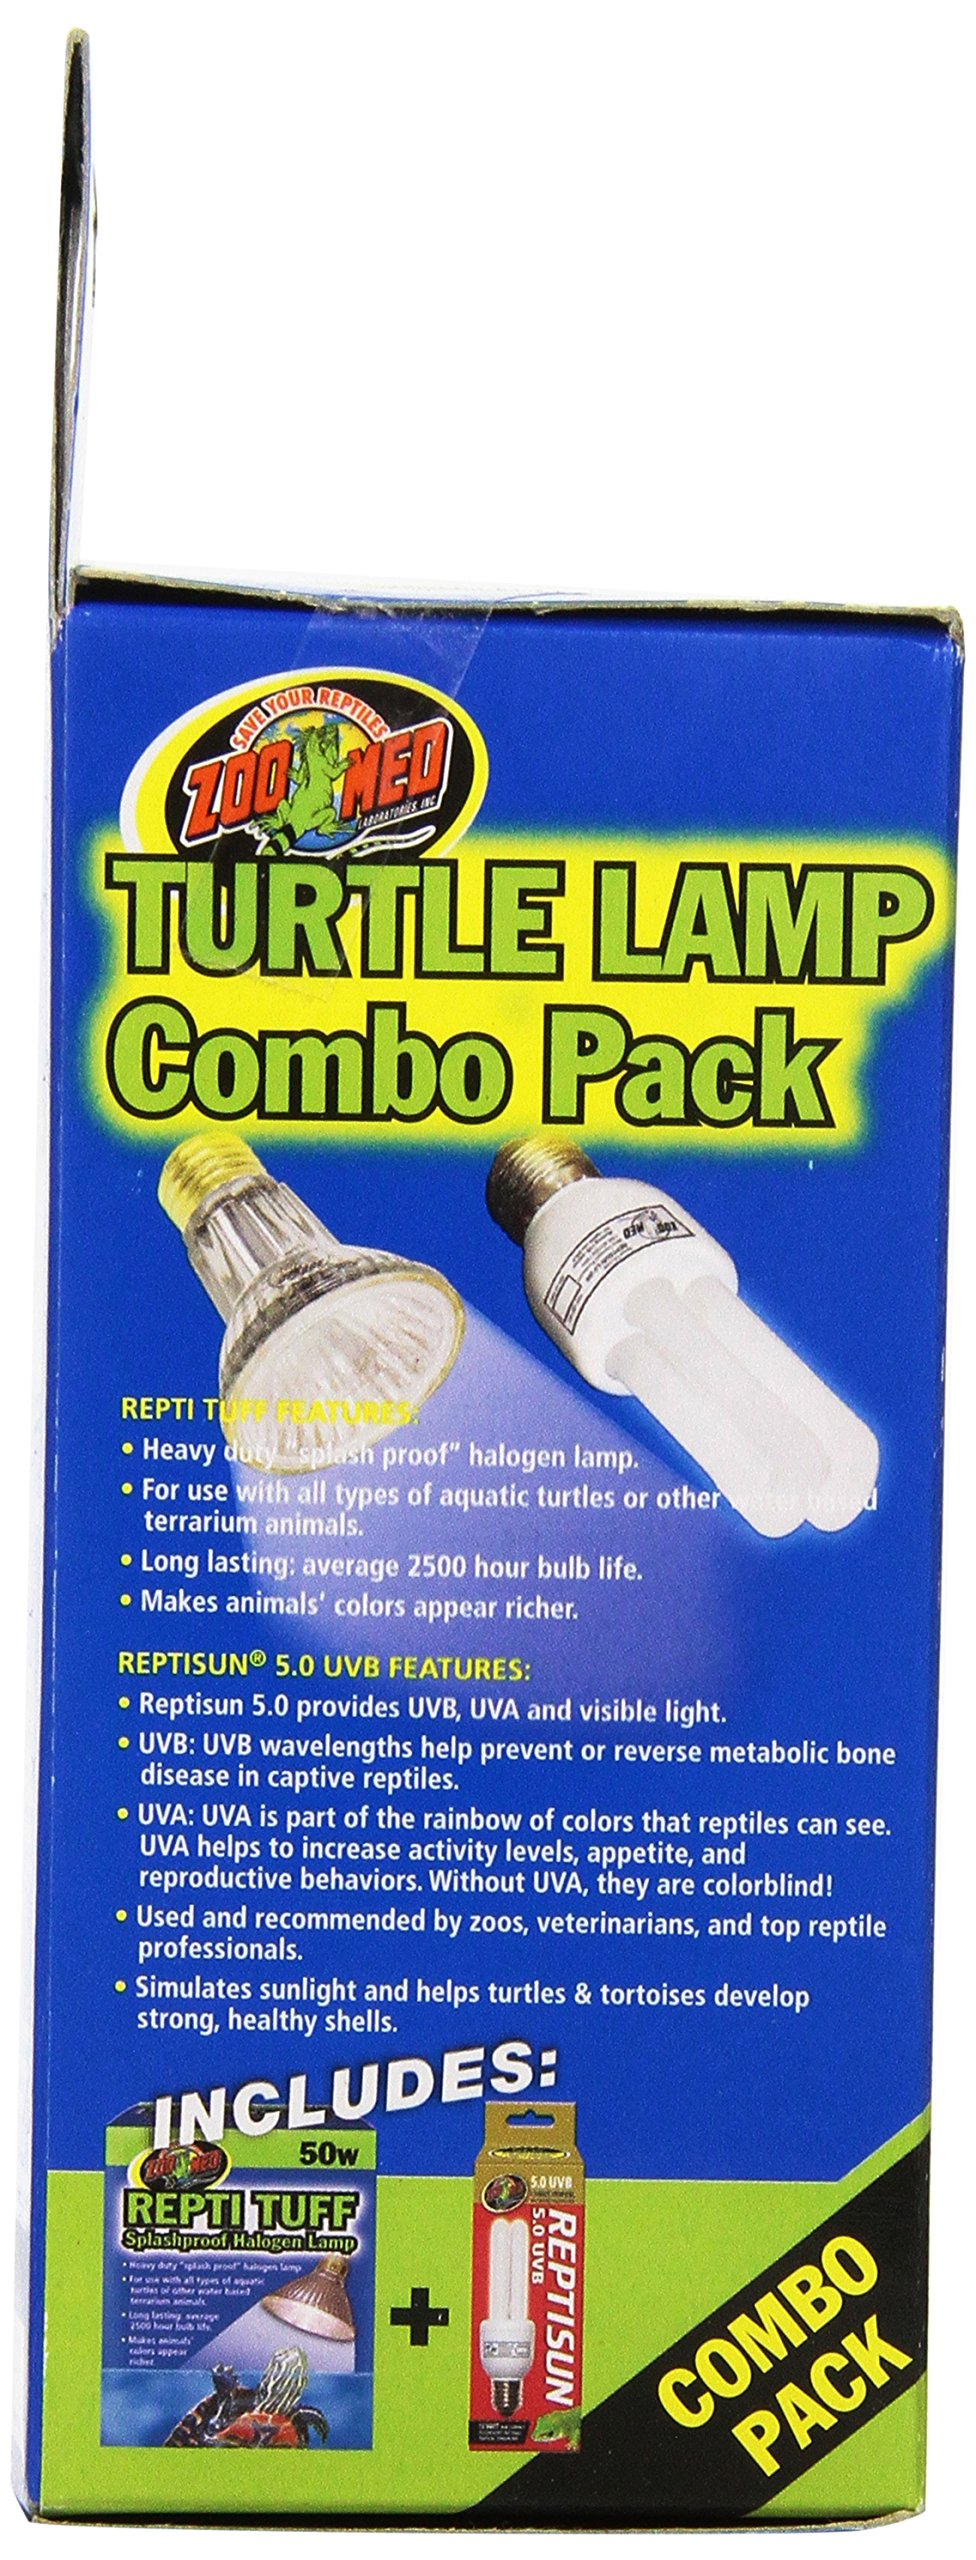 Aquatic Turtle Lamp Reptile Tuff Splashproof Halogen Heat Lamp Combo Pack Safe 97612370058 Ebay